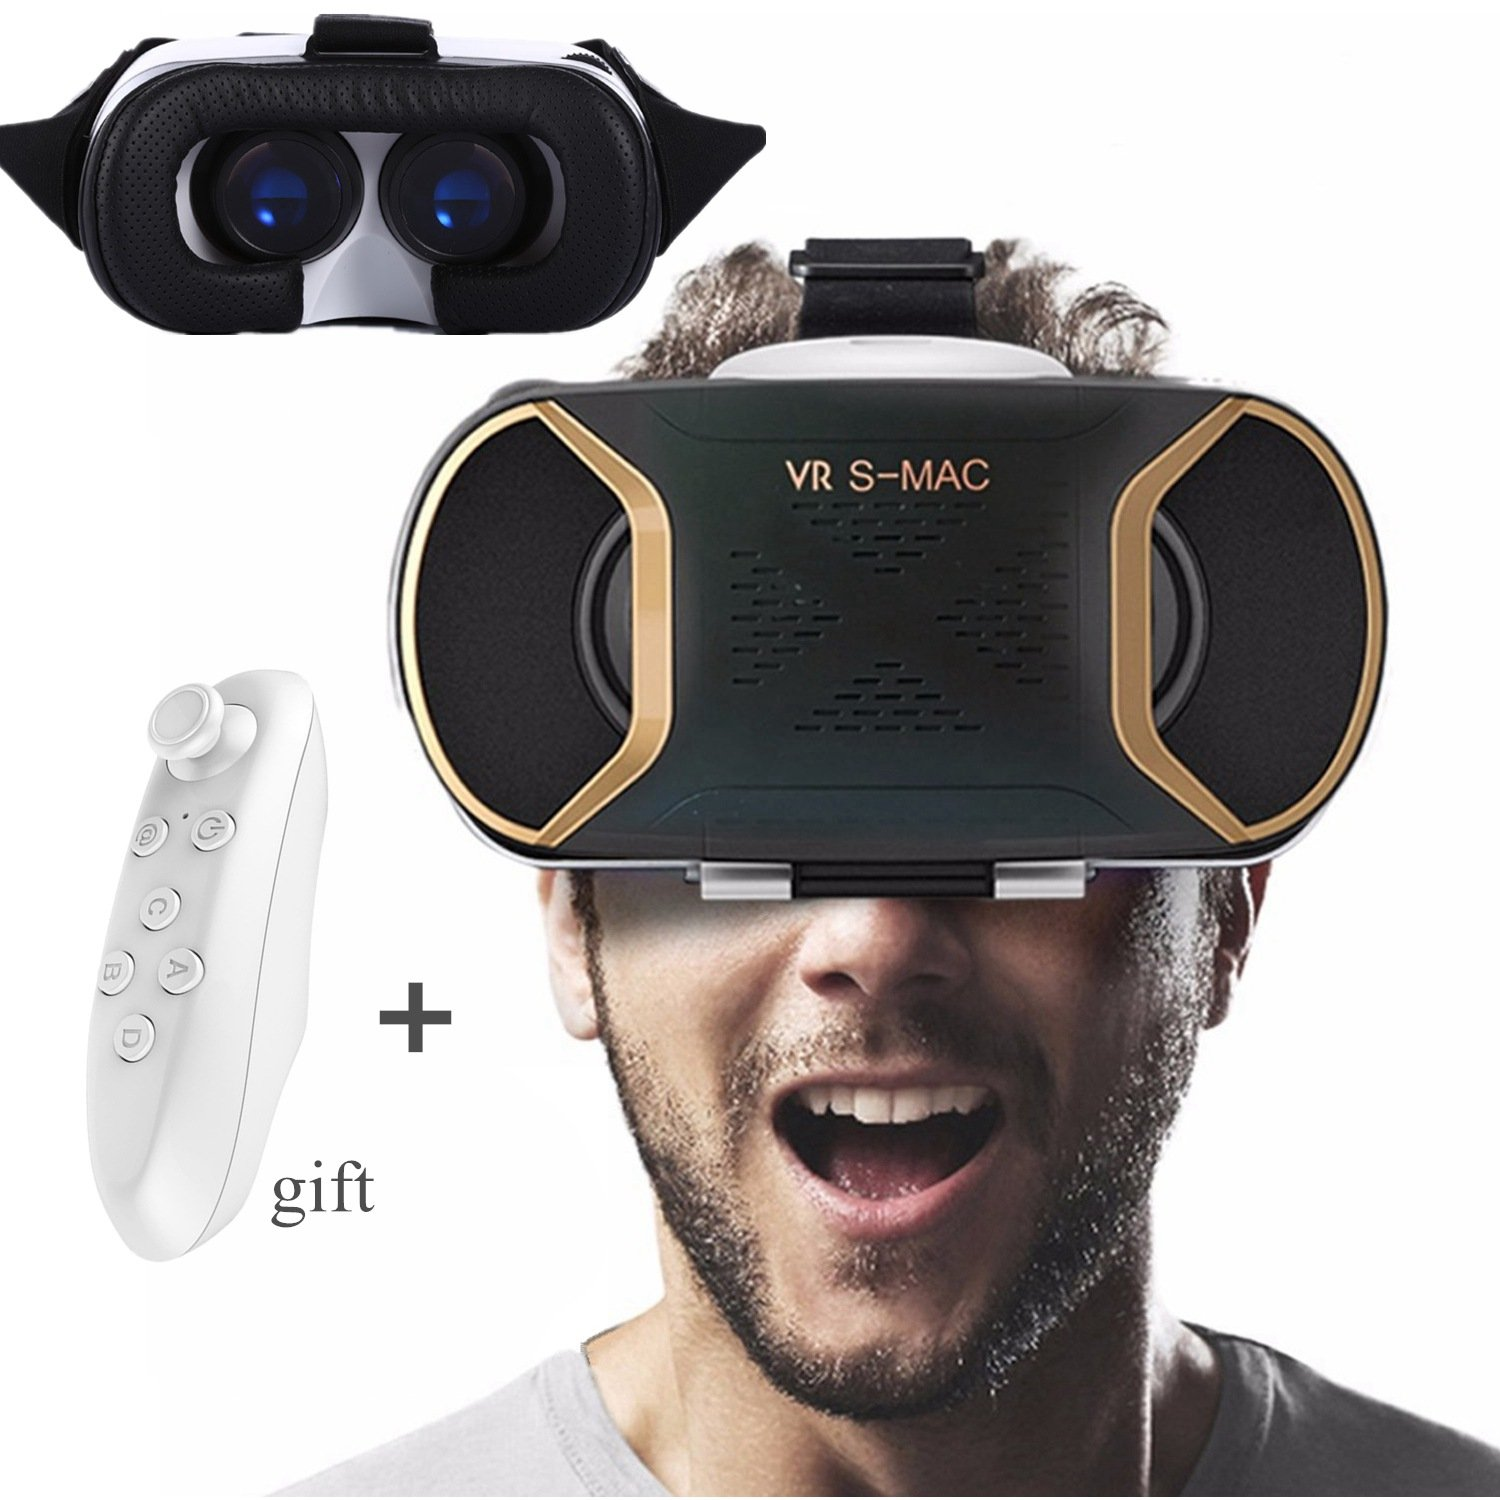 "3D VR Headset with Remote Controller, TSANGLIGHT VR Glasses 3D IMAX 360° Game Movie Video Viewer for 4.5-5.5"" iOS/Android Smartphones iPhone 8 7 6S 6 Plus Samsung S7 S6 LG HTC etc - Blue Lens - Gold 4332703177"